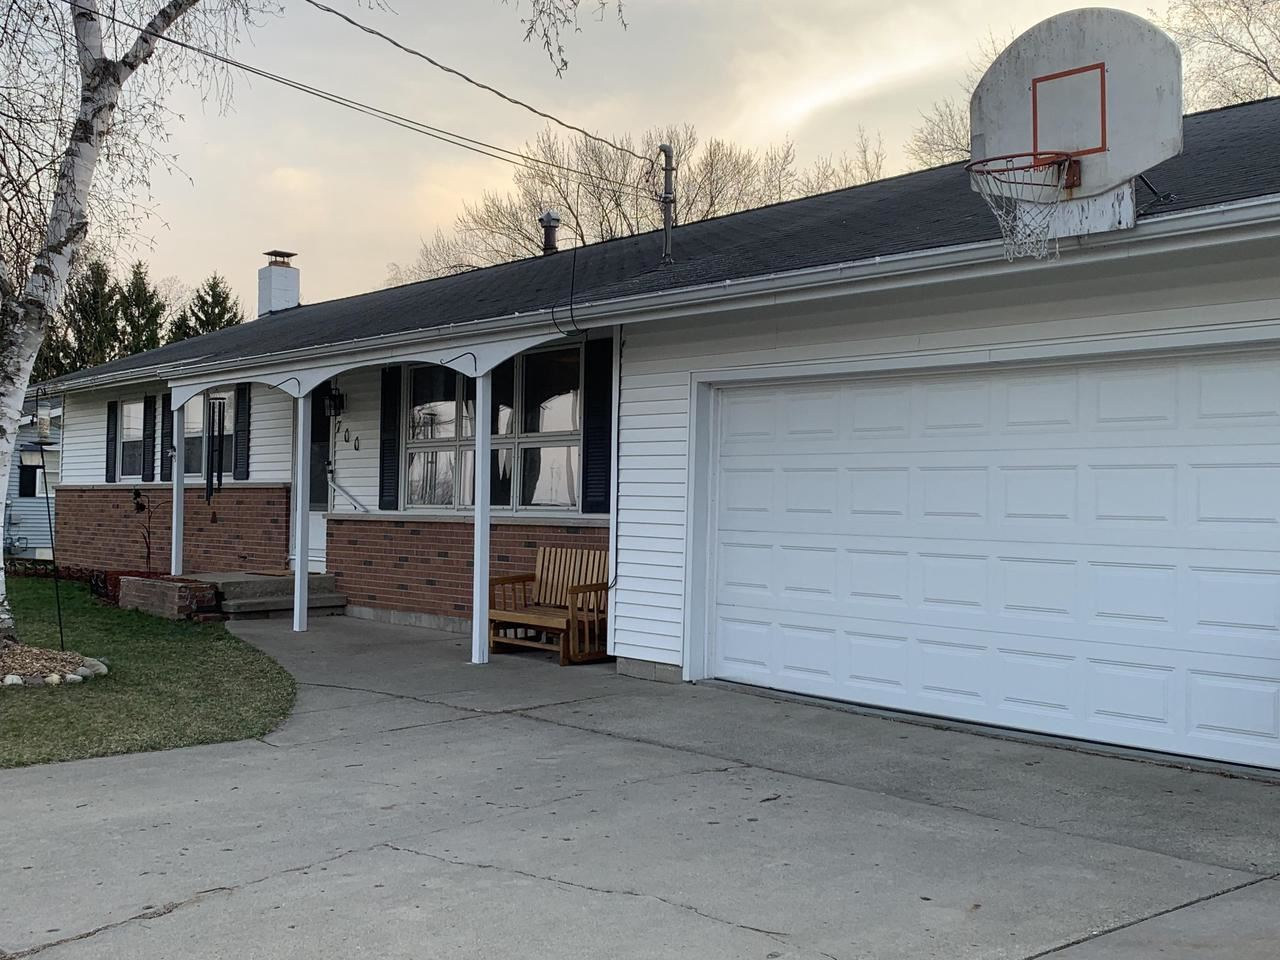 700 Valley St, Horicon, WI 53032 - MLS#: 1734078